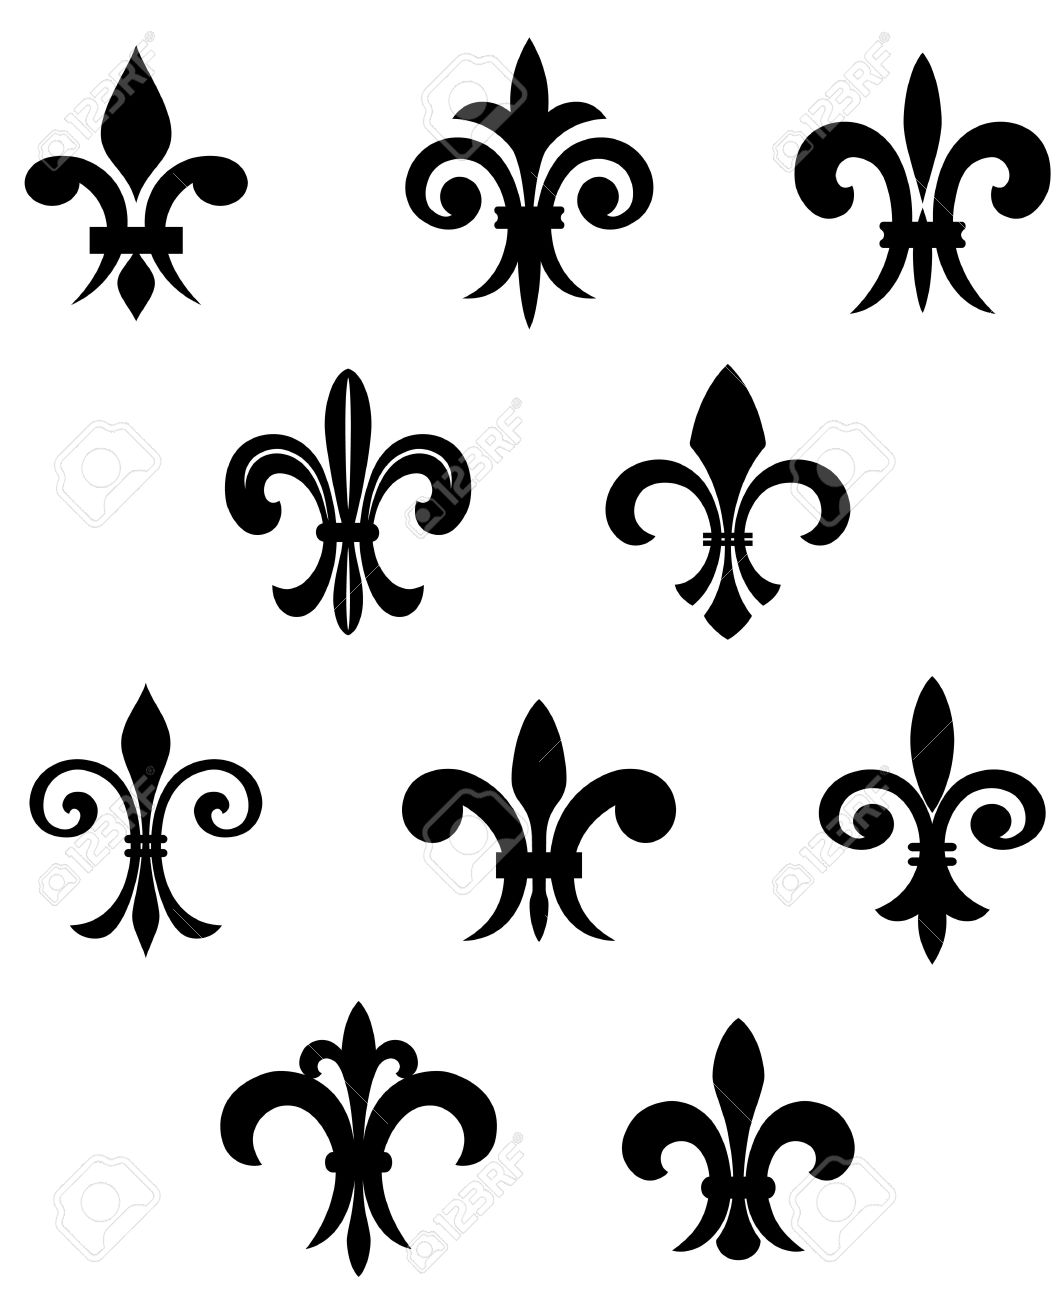 Royal french lily symbols for design and decorate Stock Vector - 6725420